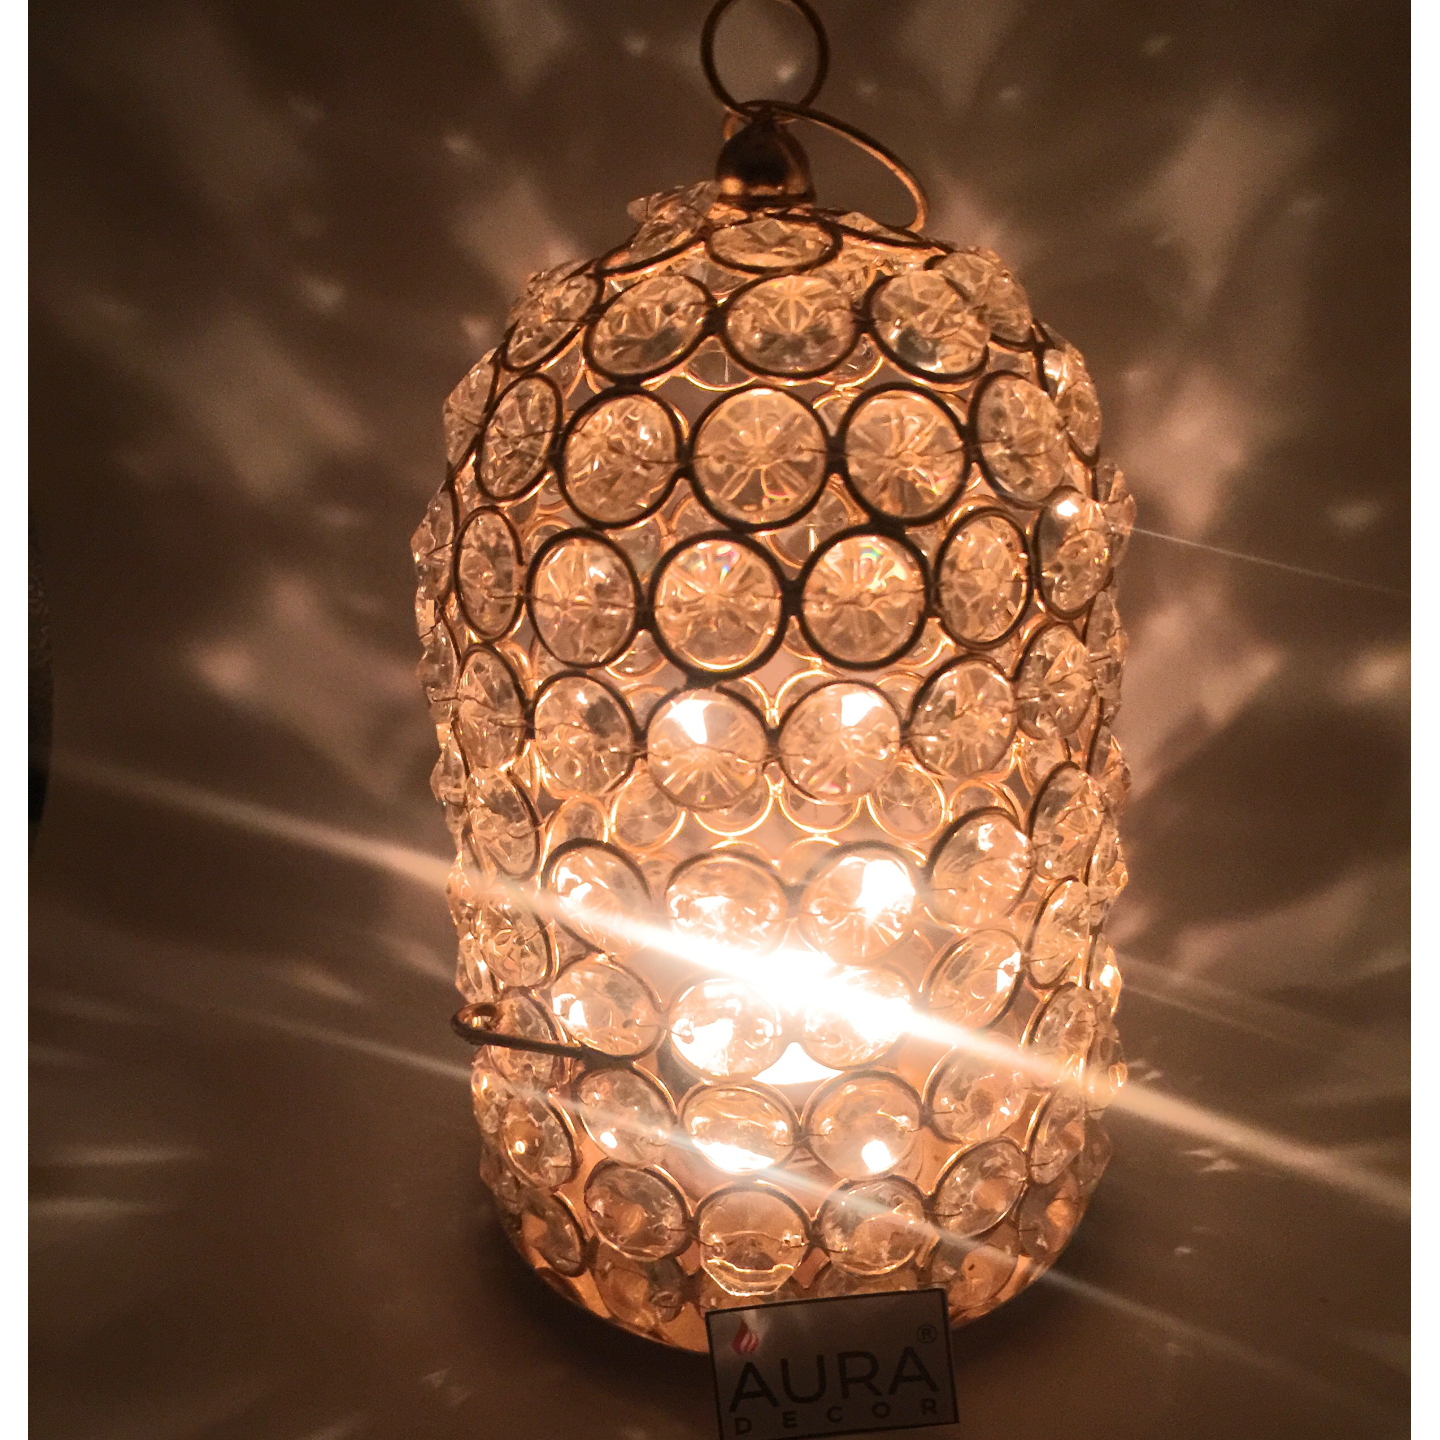 AuraDecor Crystal Finish Cage Tealight Holder with a Tealight